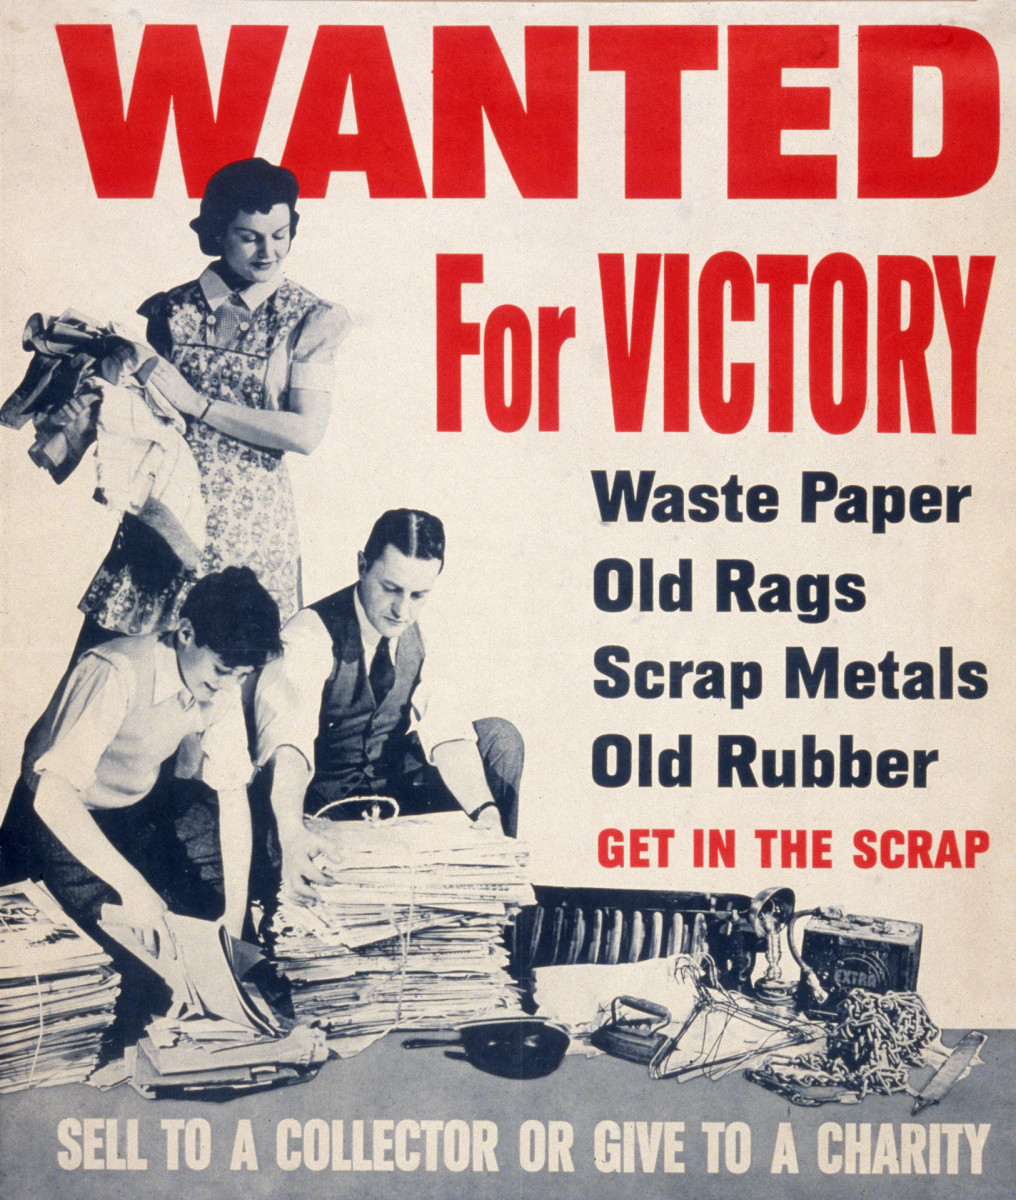 Recycling during WWII